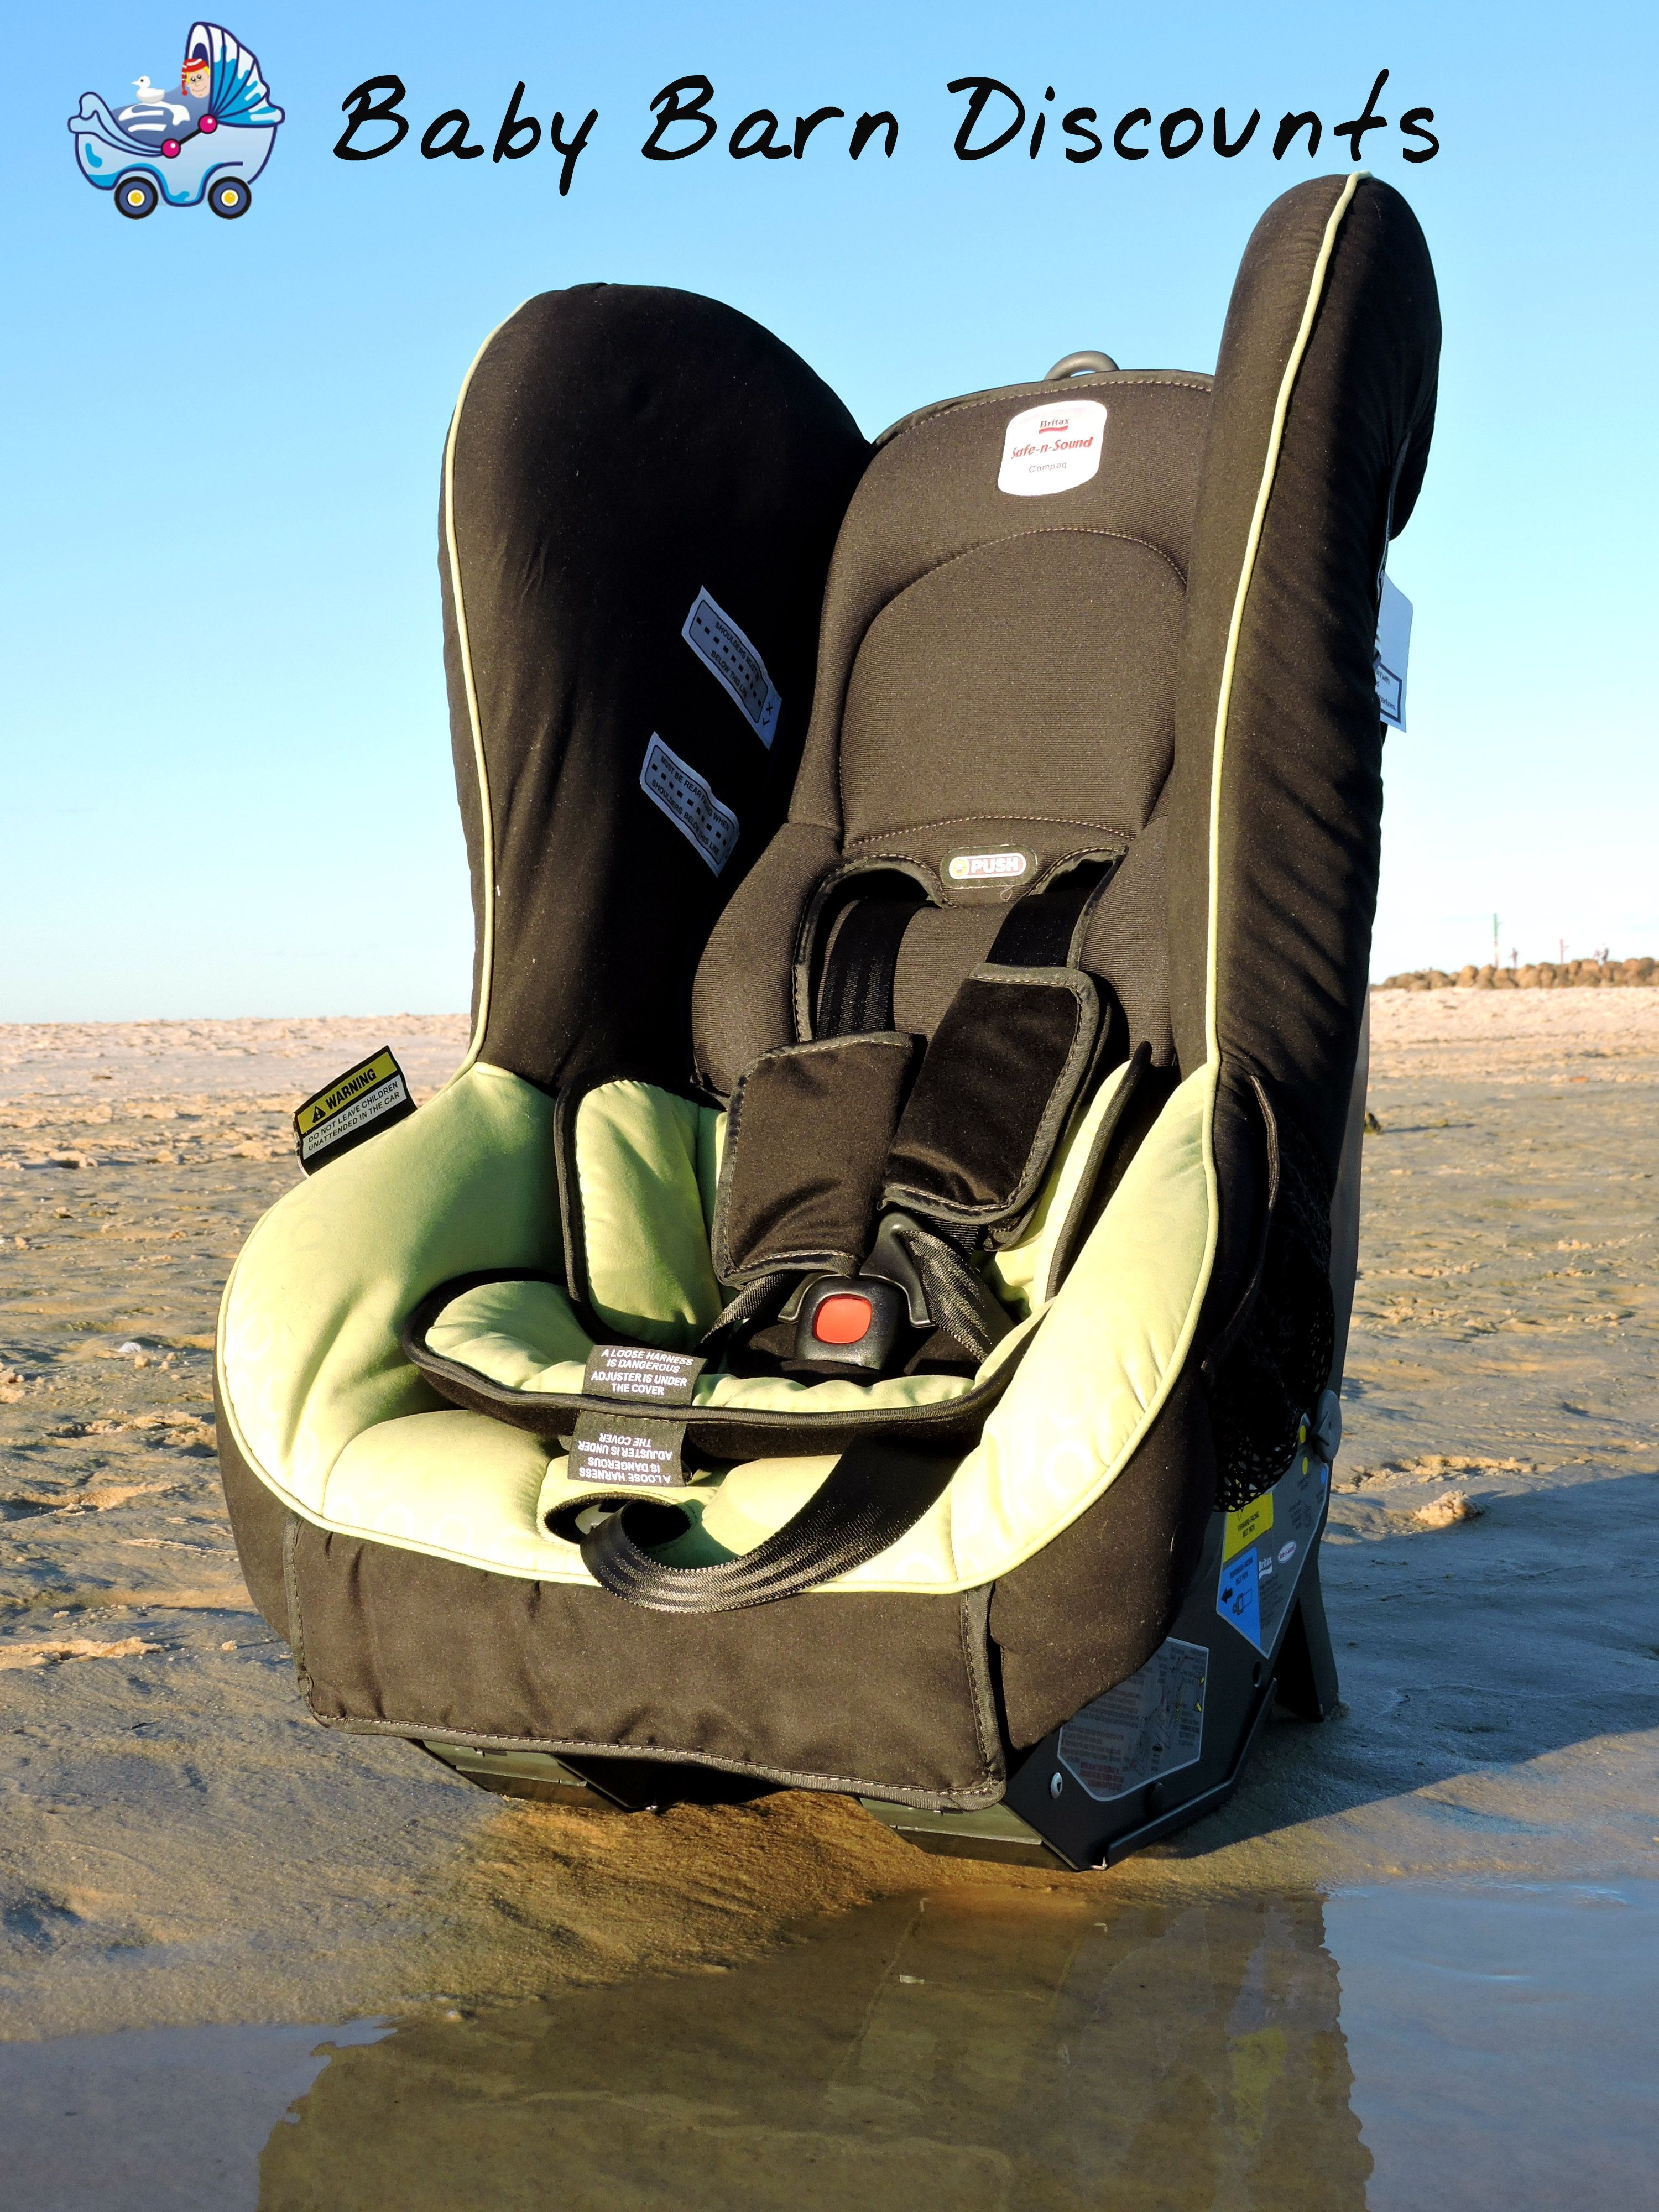 The Safe n Sound Compaq MKII Convertible Car Seat (Green